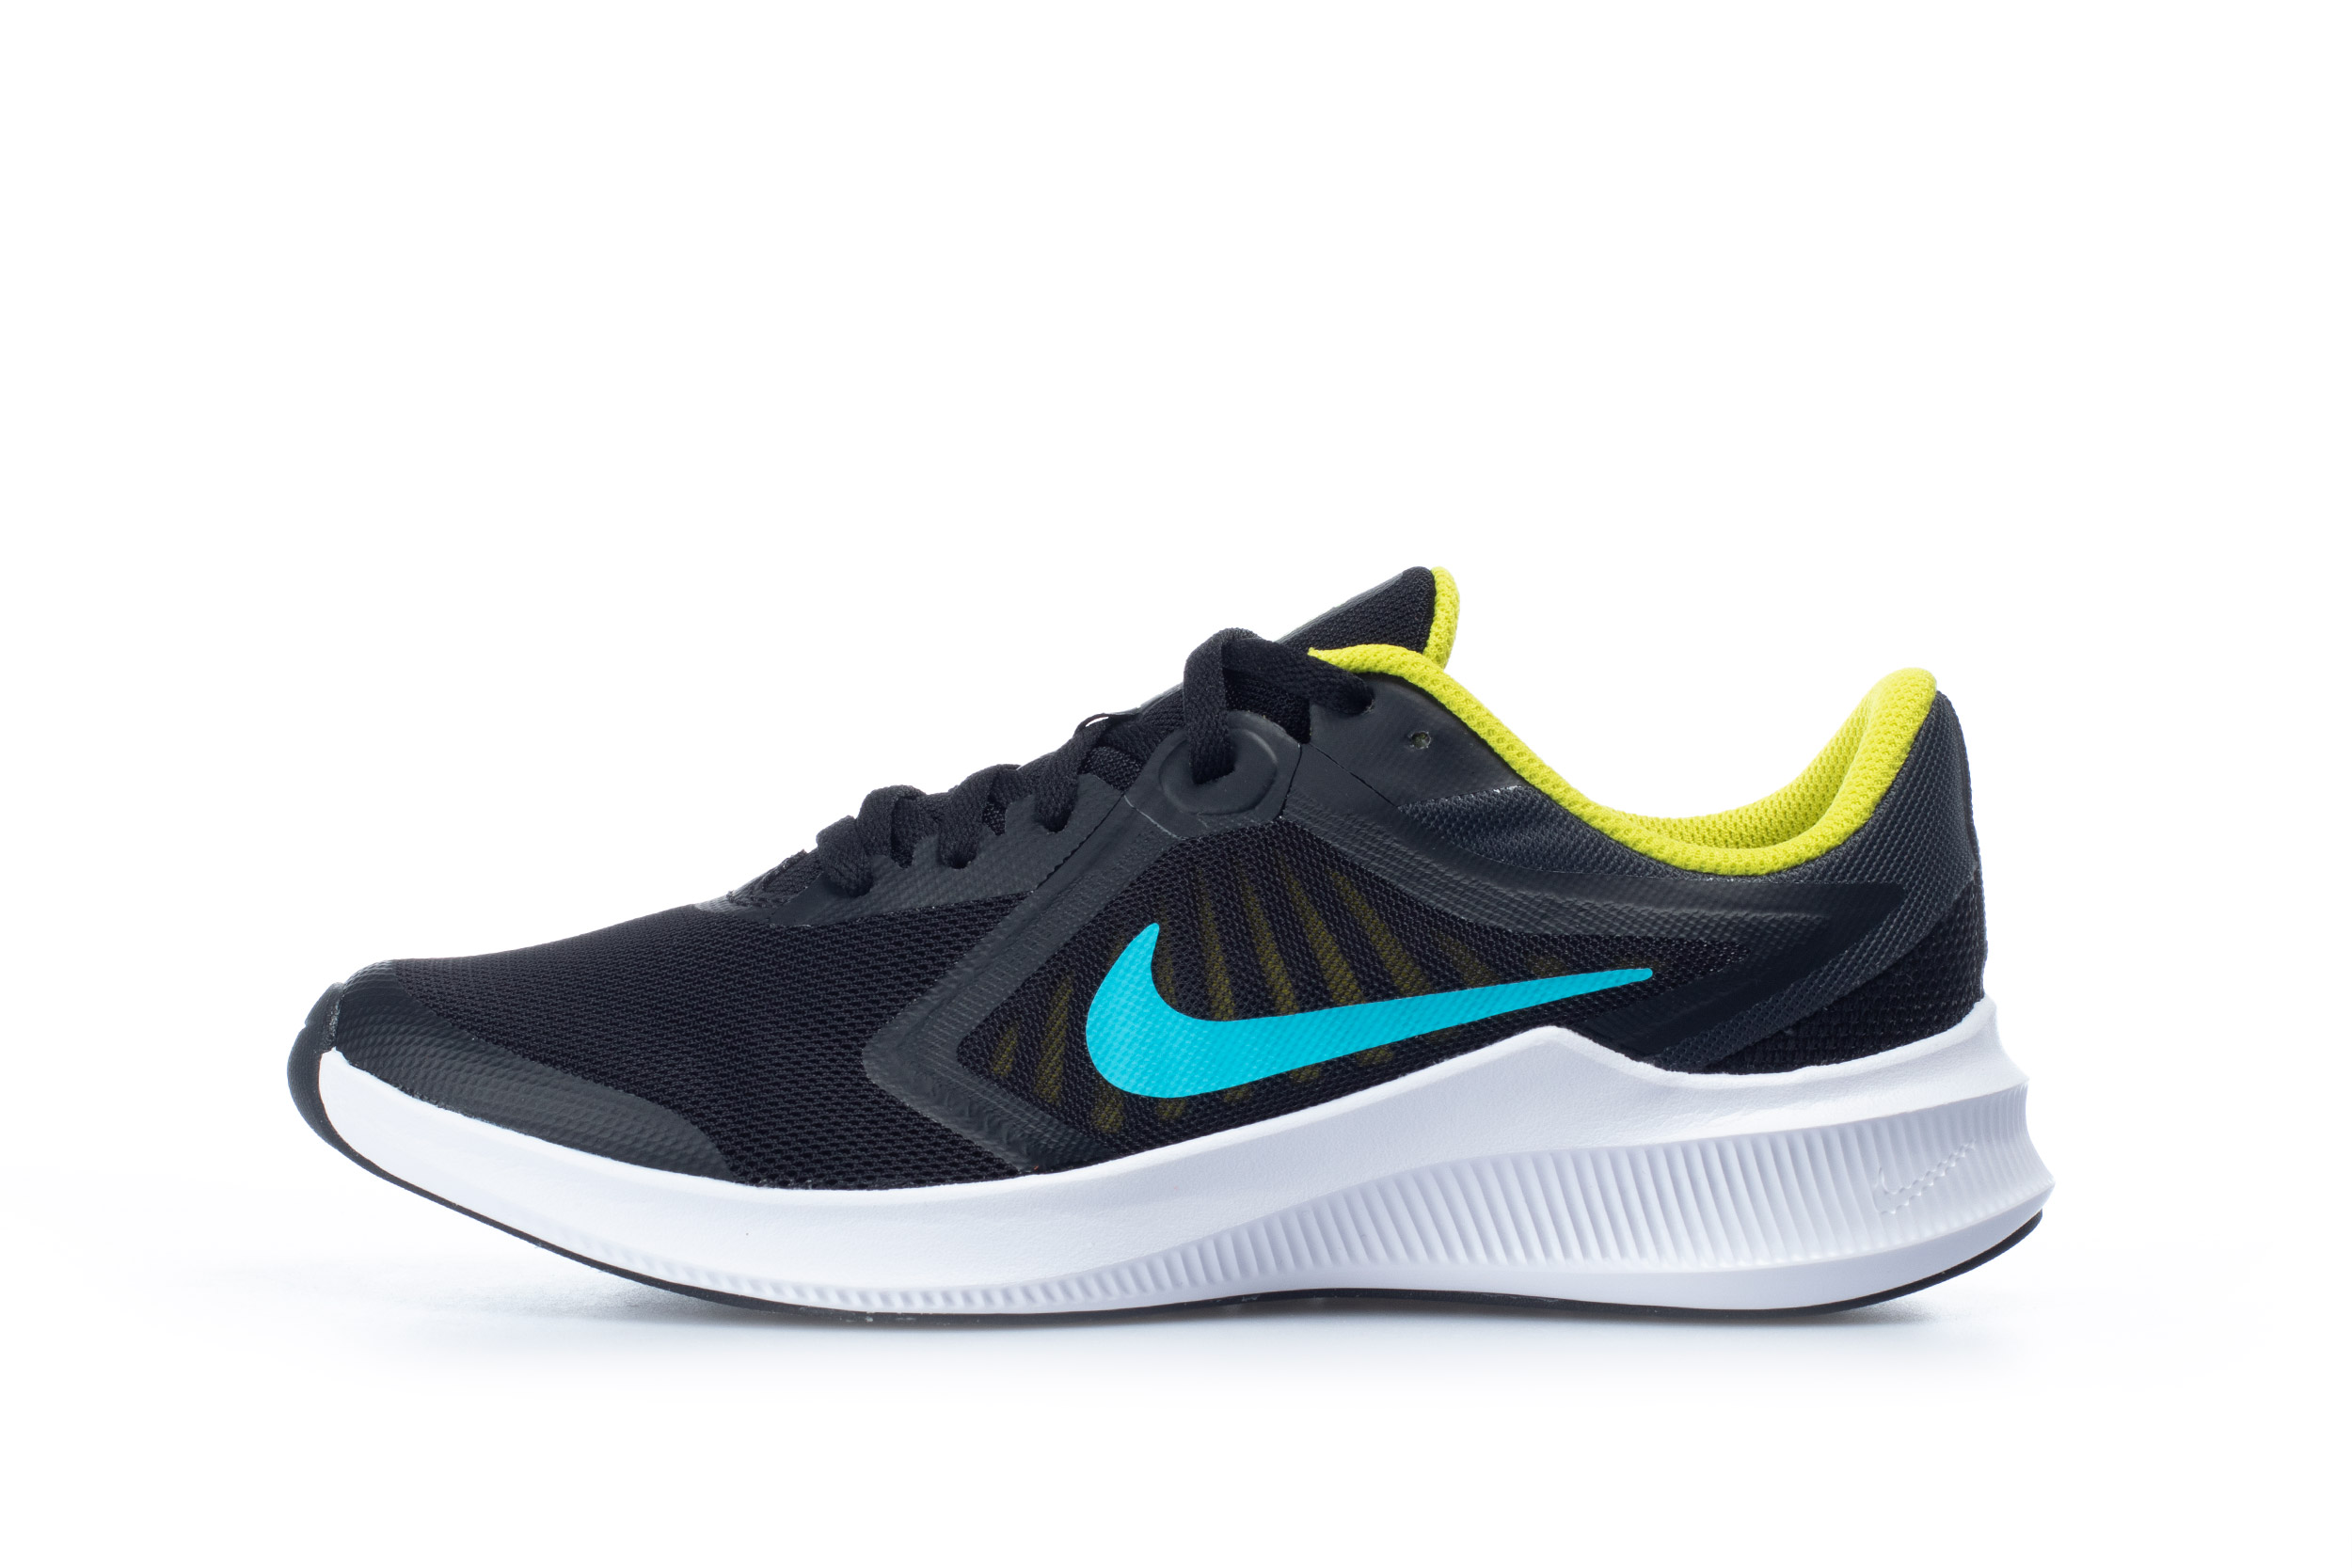 NIKE DOWNSHIFTER 10 CJ2066-009 Μαύρο